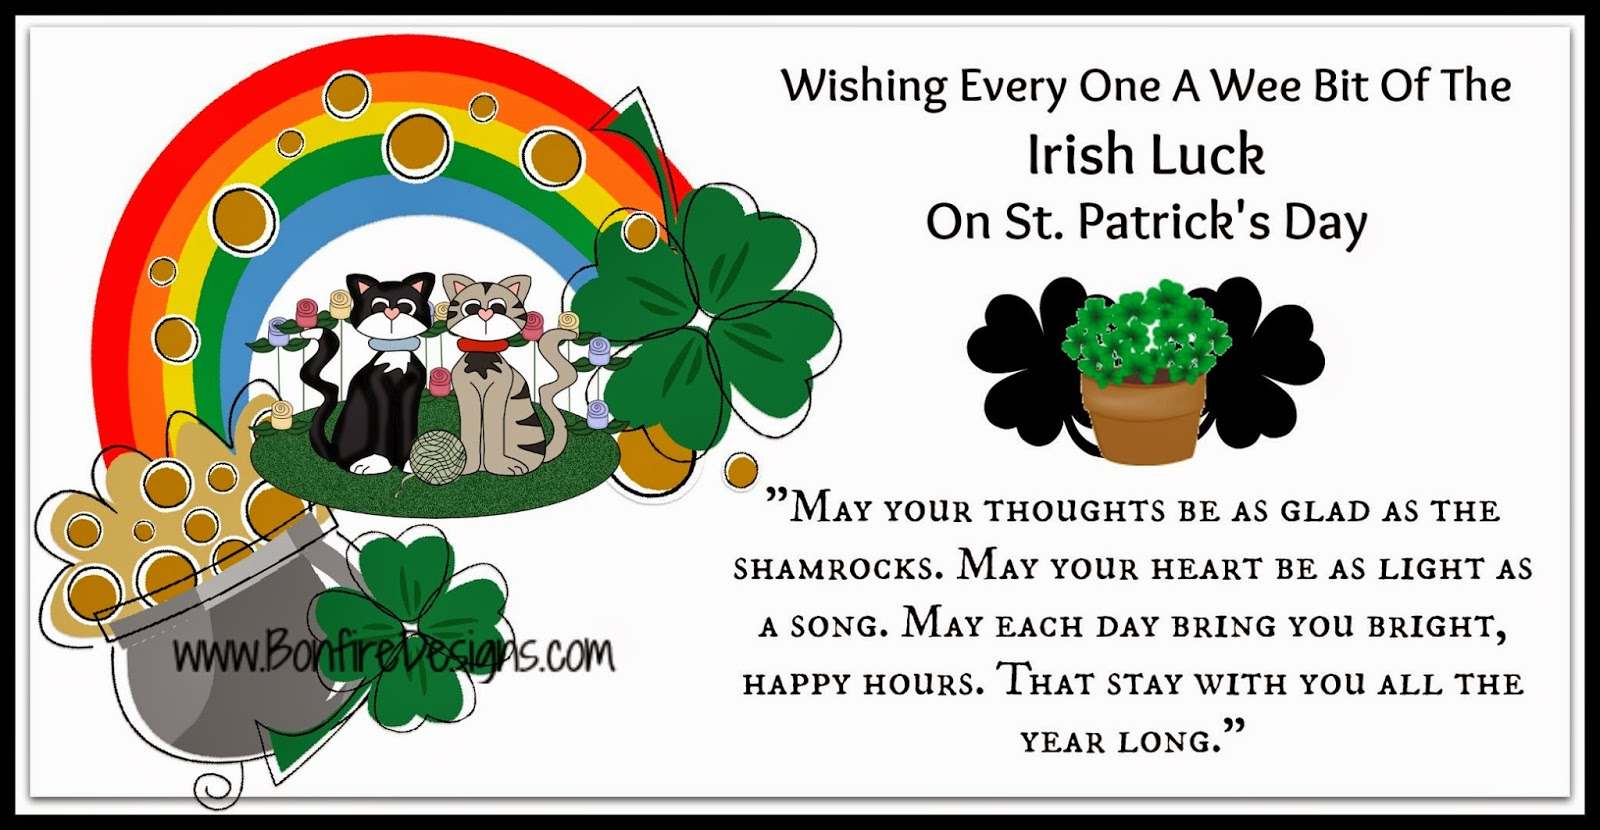 Happy St Patrick's Day To All Of My Irish Friends and to Everyone, because I'm pretty sure everyone has a little Irish Pride and Temper In Them!